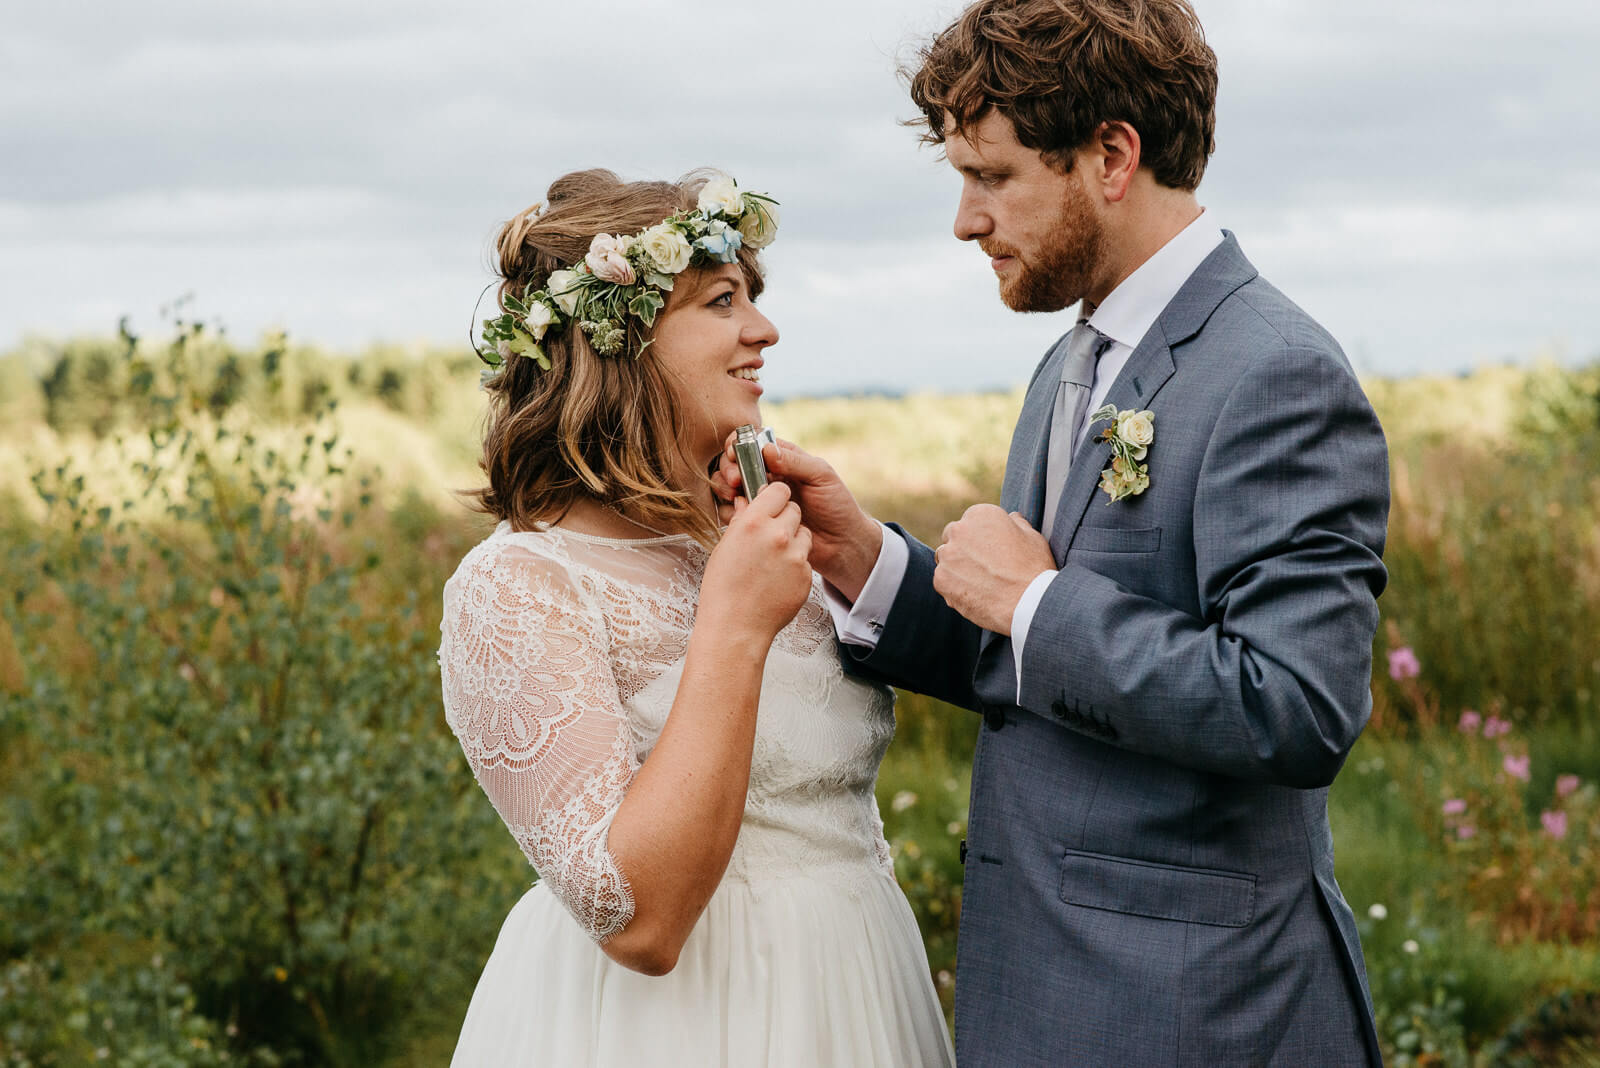 Shropshire Bride wearing floral crown looking lovingly at groom while holding his hipflask at tipi festival wedding on the edge of a nature reserve